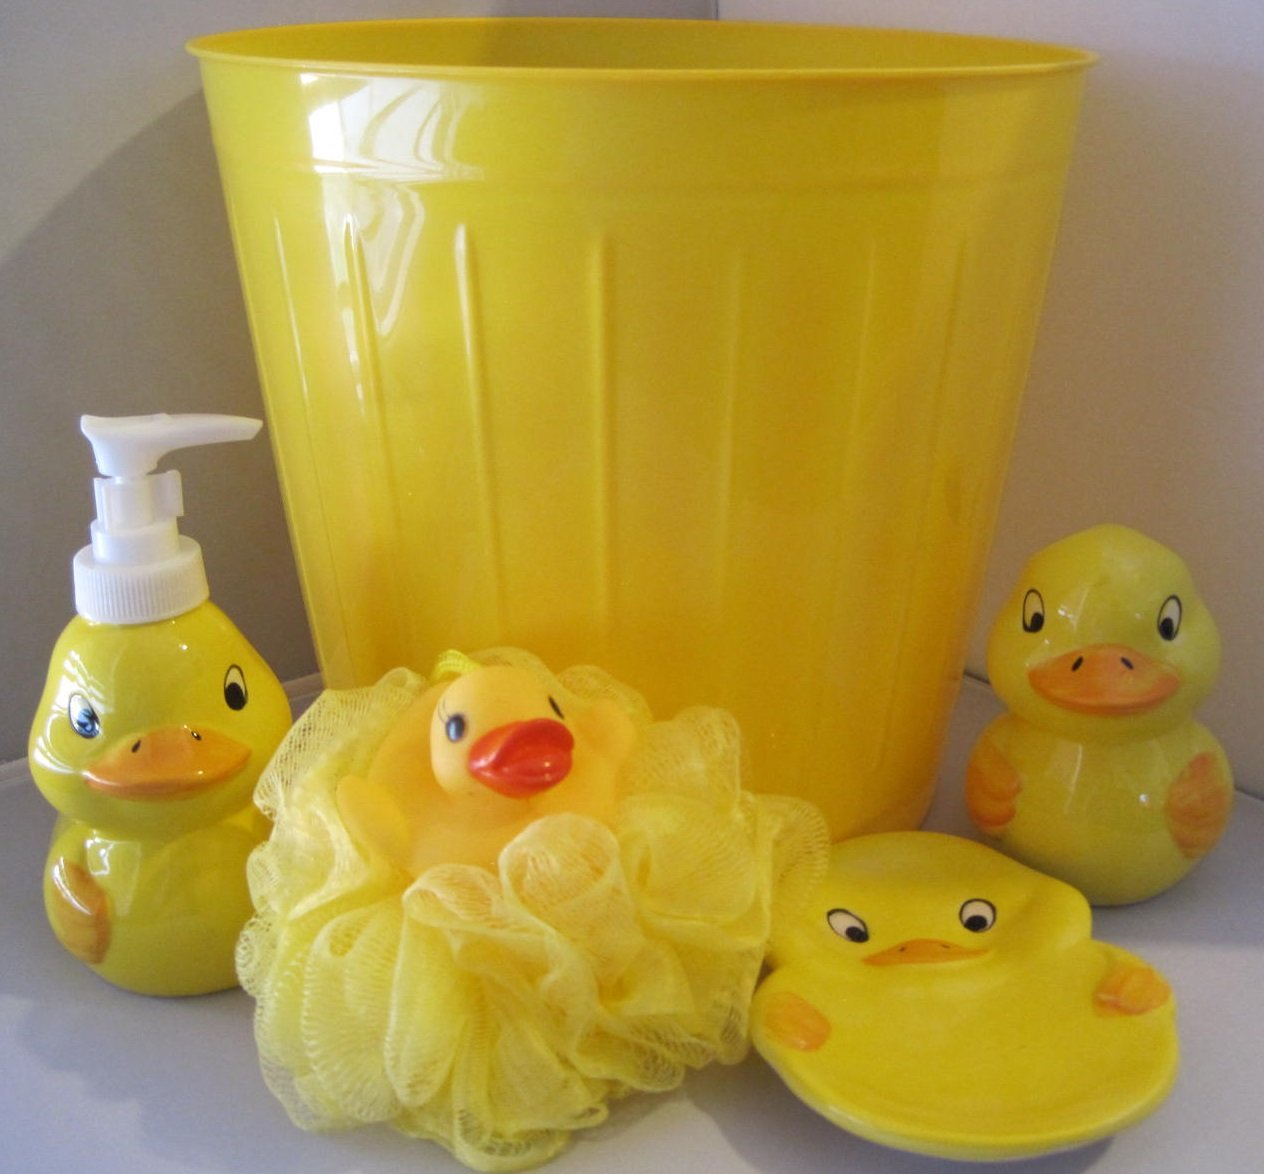 Amazon.com: 5 Piece Bathroom Accessories   Yellow Duck   Lotion Soap  Dispenser, Soap Dish, Toothbrush Holder, Bath Sponge And Trash Can: Home U0026  Kitchen